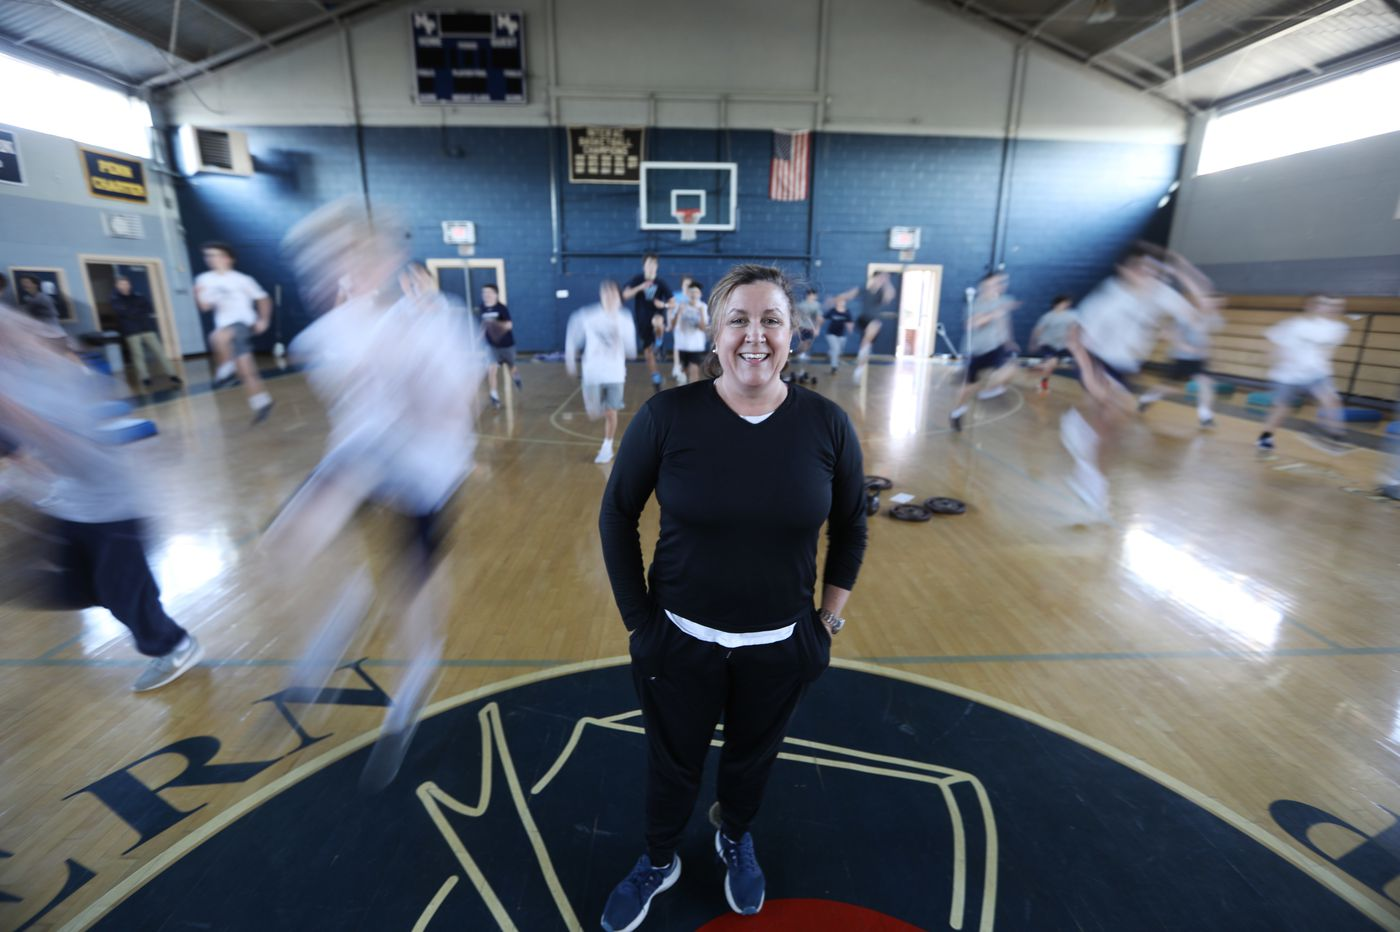 Malvern Prep strength coach Mary Fran Frankenheimer breaks both a sweat and sports stereotypes